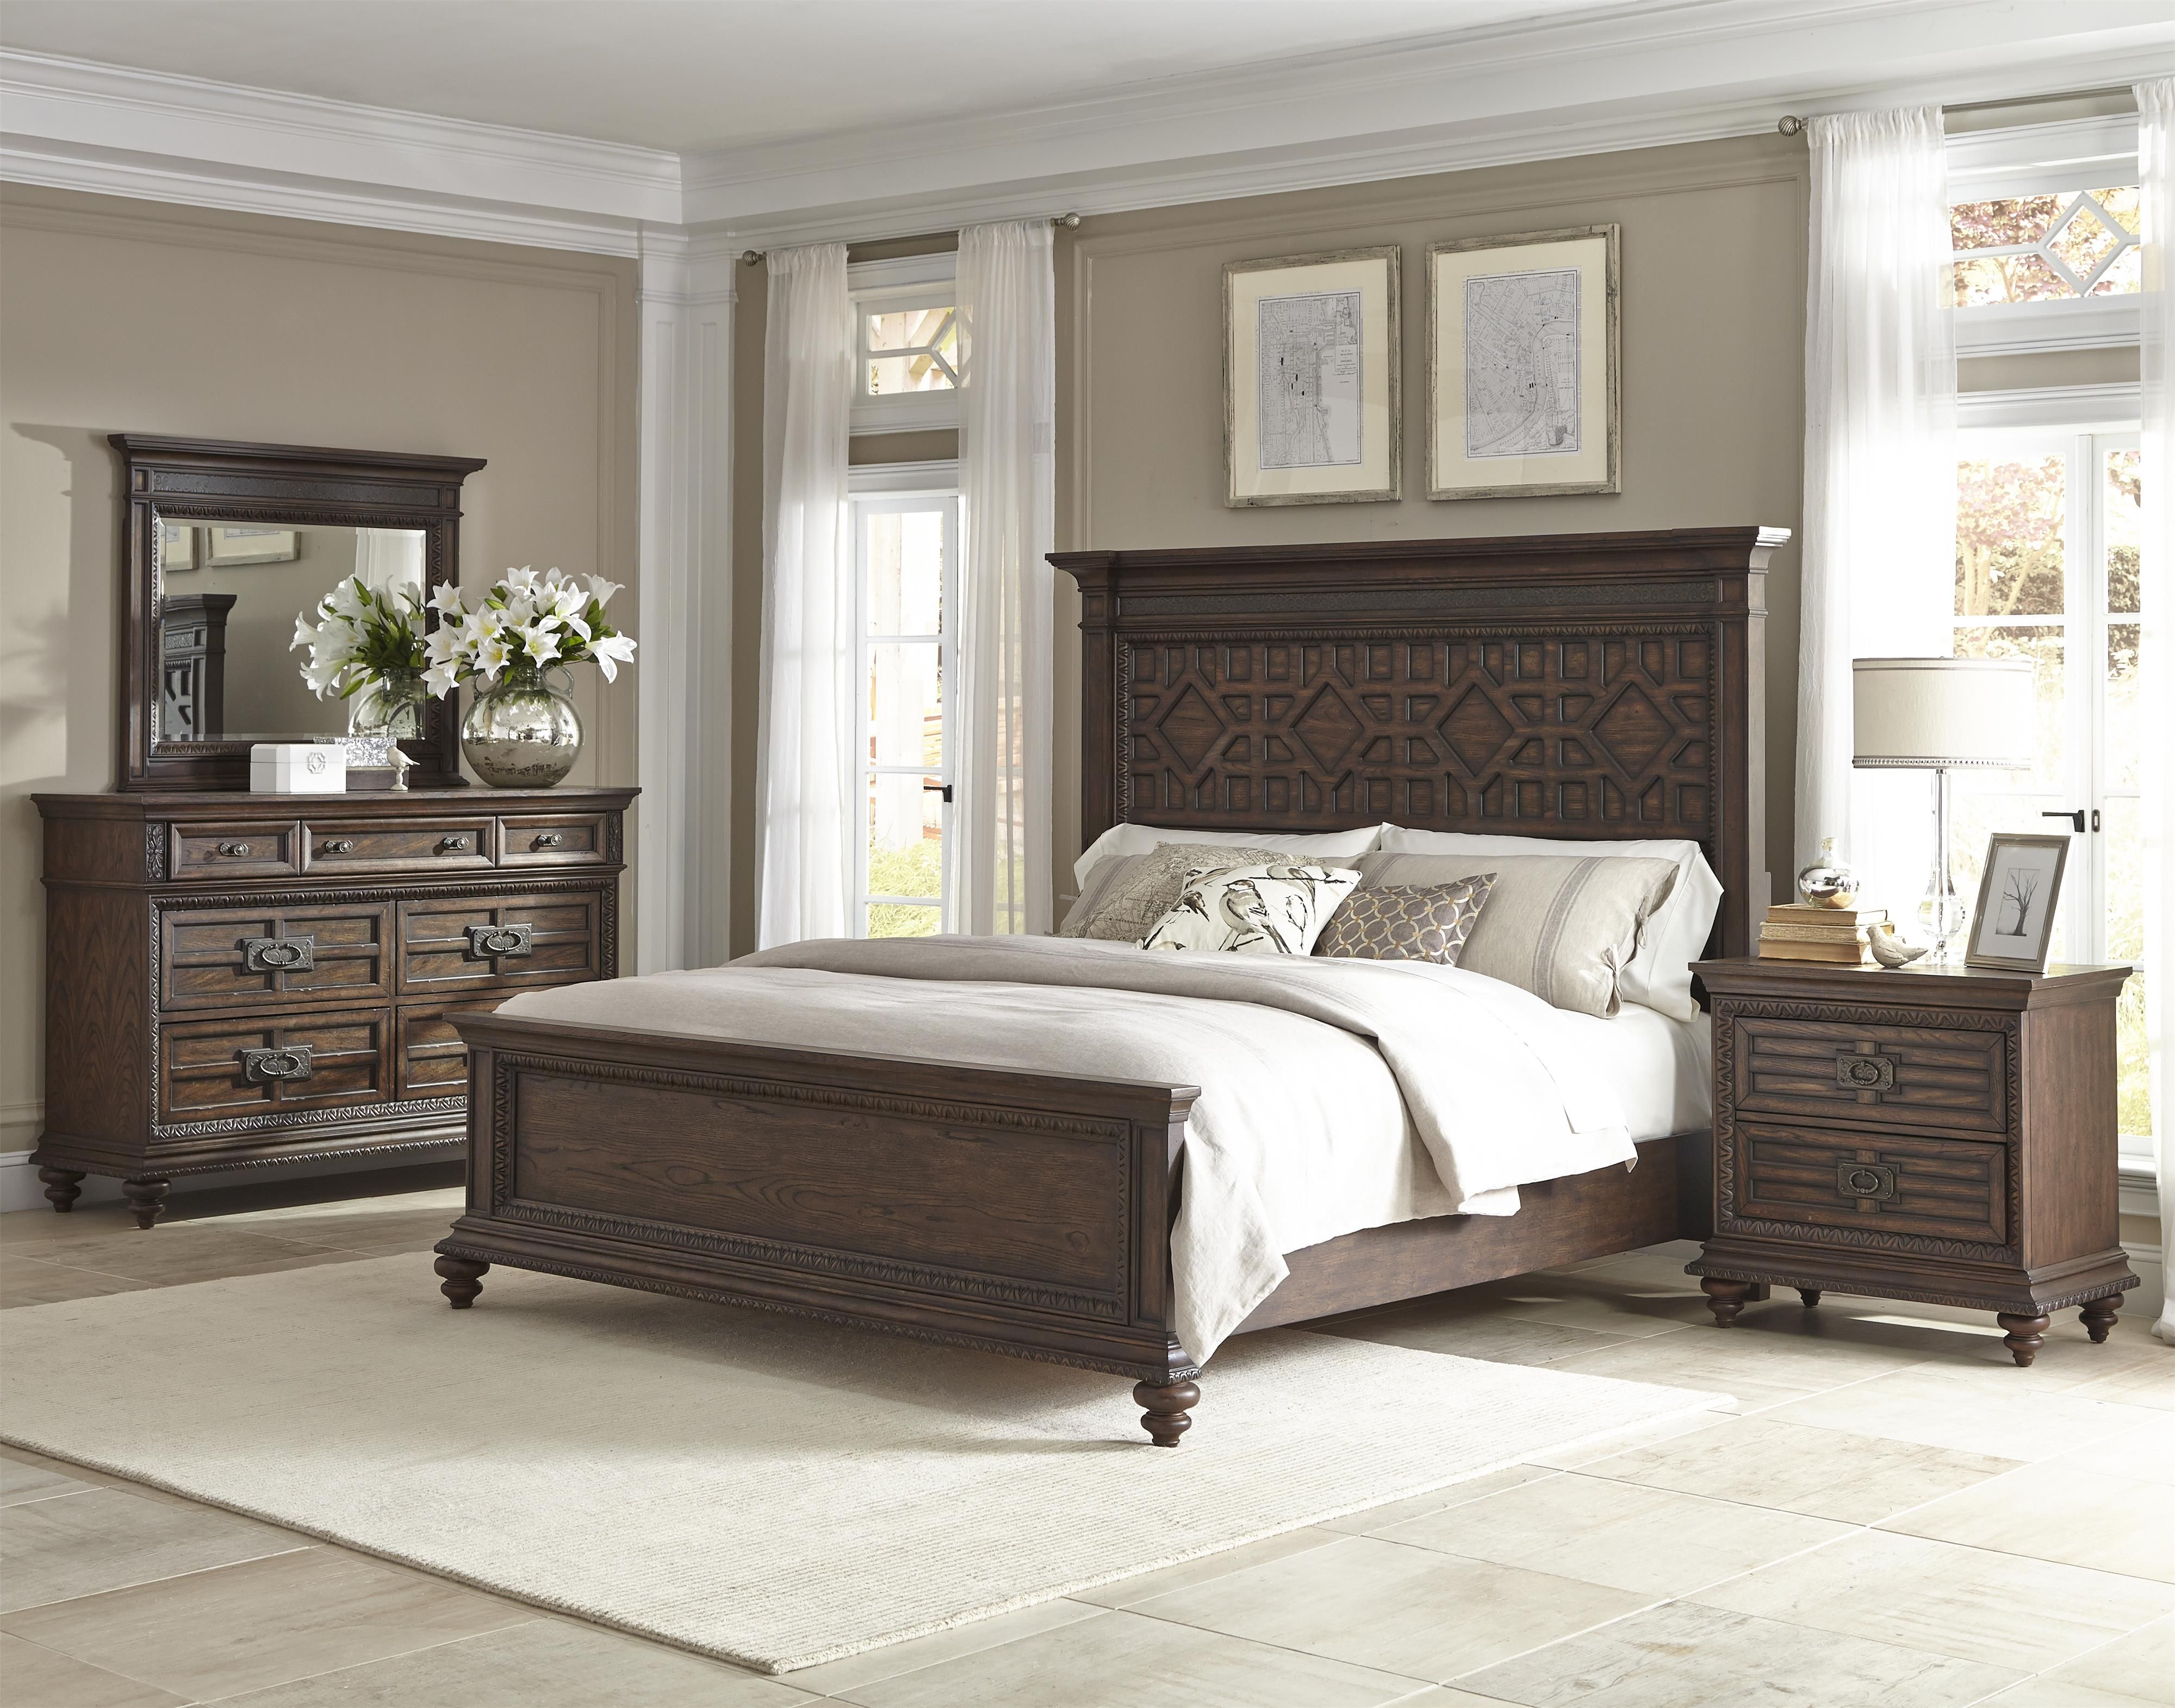 table trend king pics bedroom sets f of rack concept ideas grand cal vs chair and sofa eastern furniture appealing